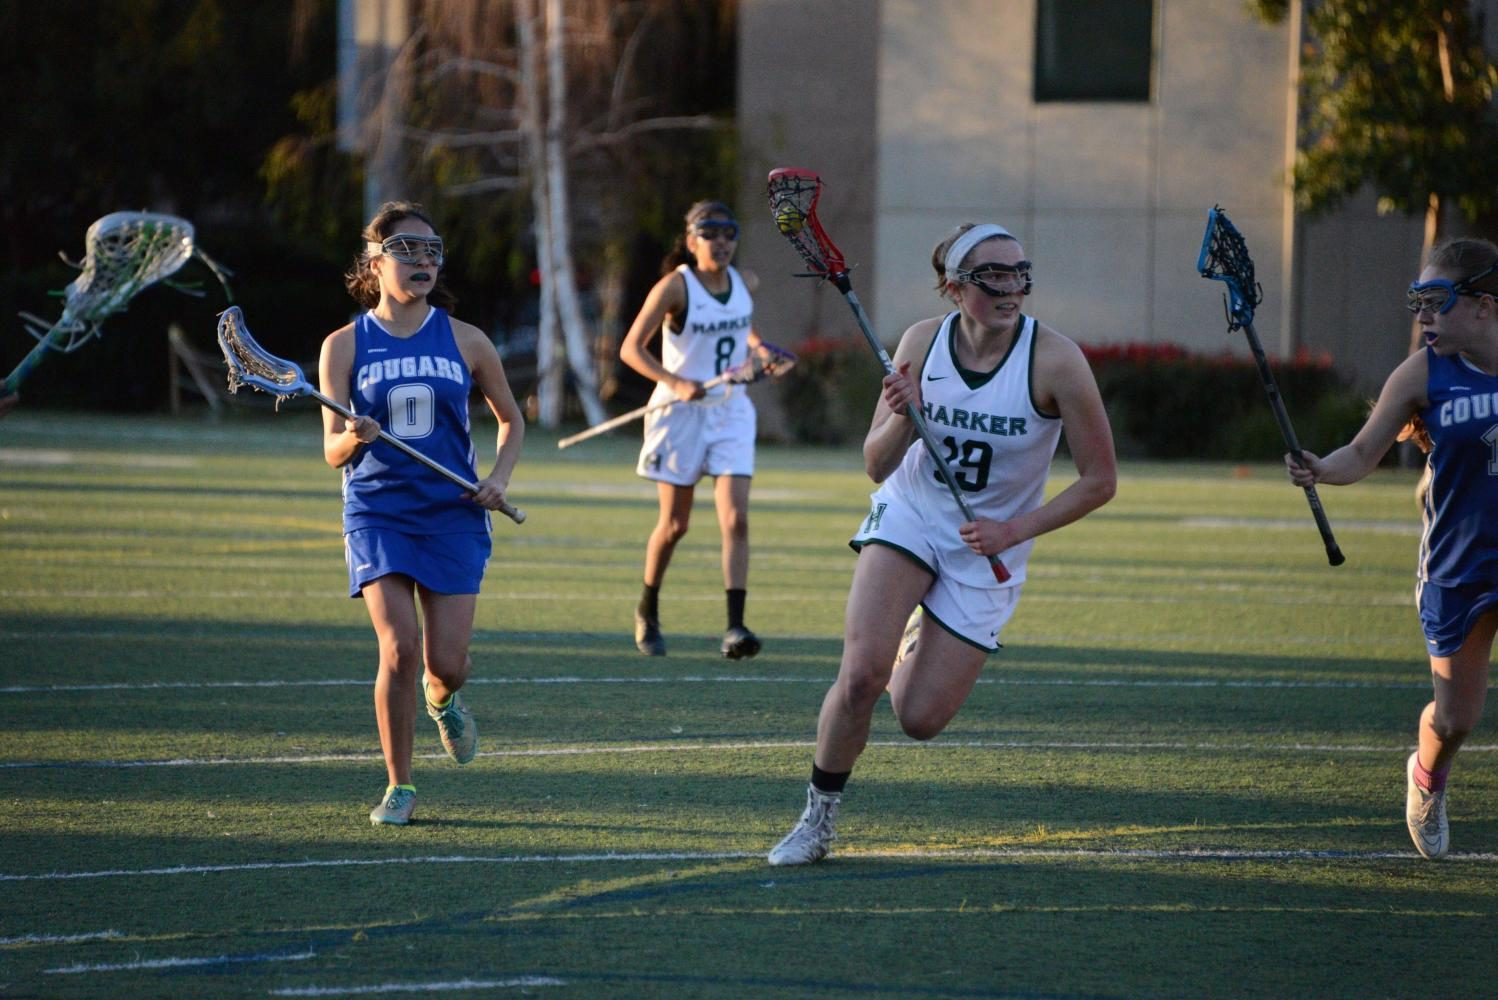 Alayna+Richmond+runs+with+the+lacrosse+ball.+The+lacrosse+team+currently+holds+a+league+record+of+1-3.